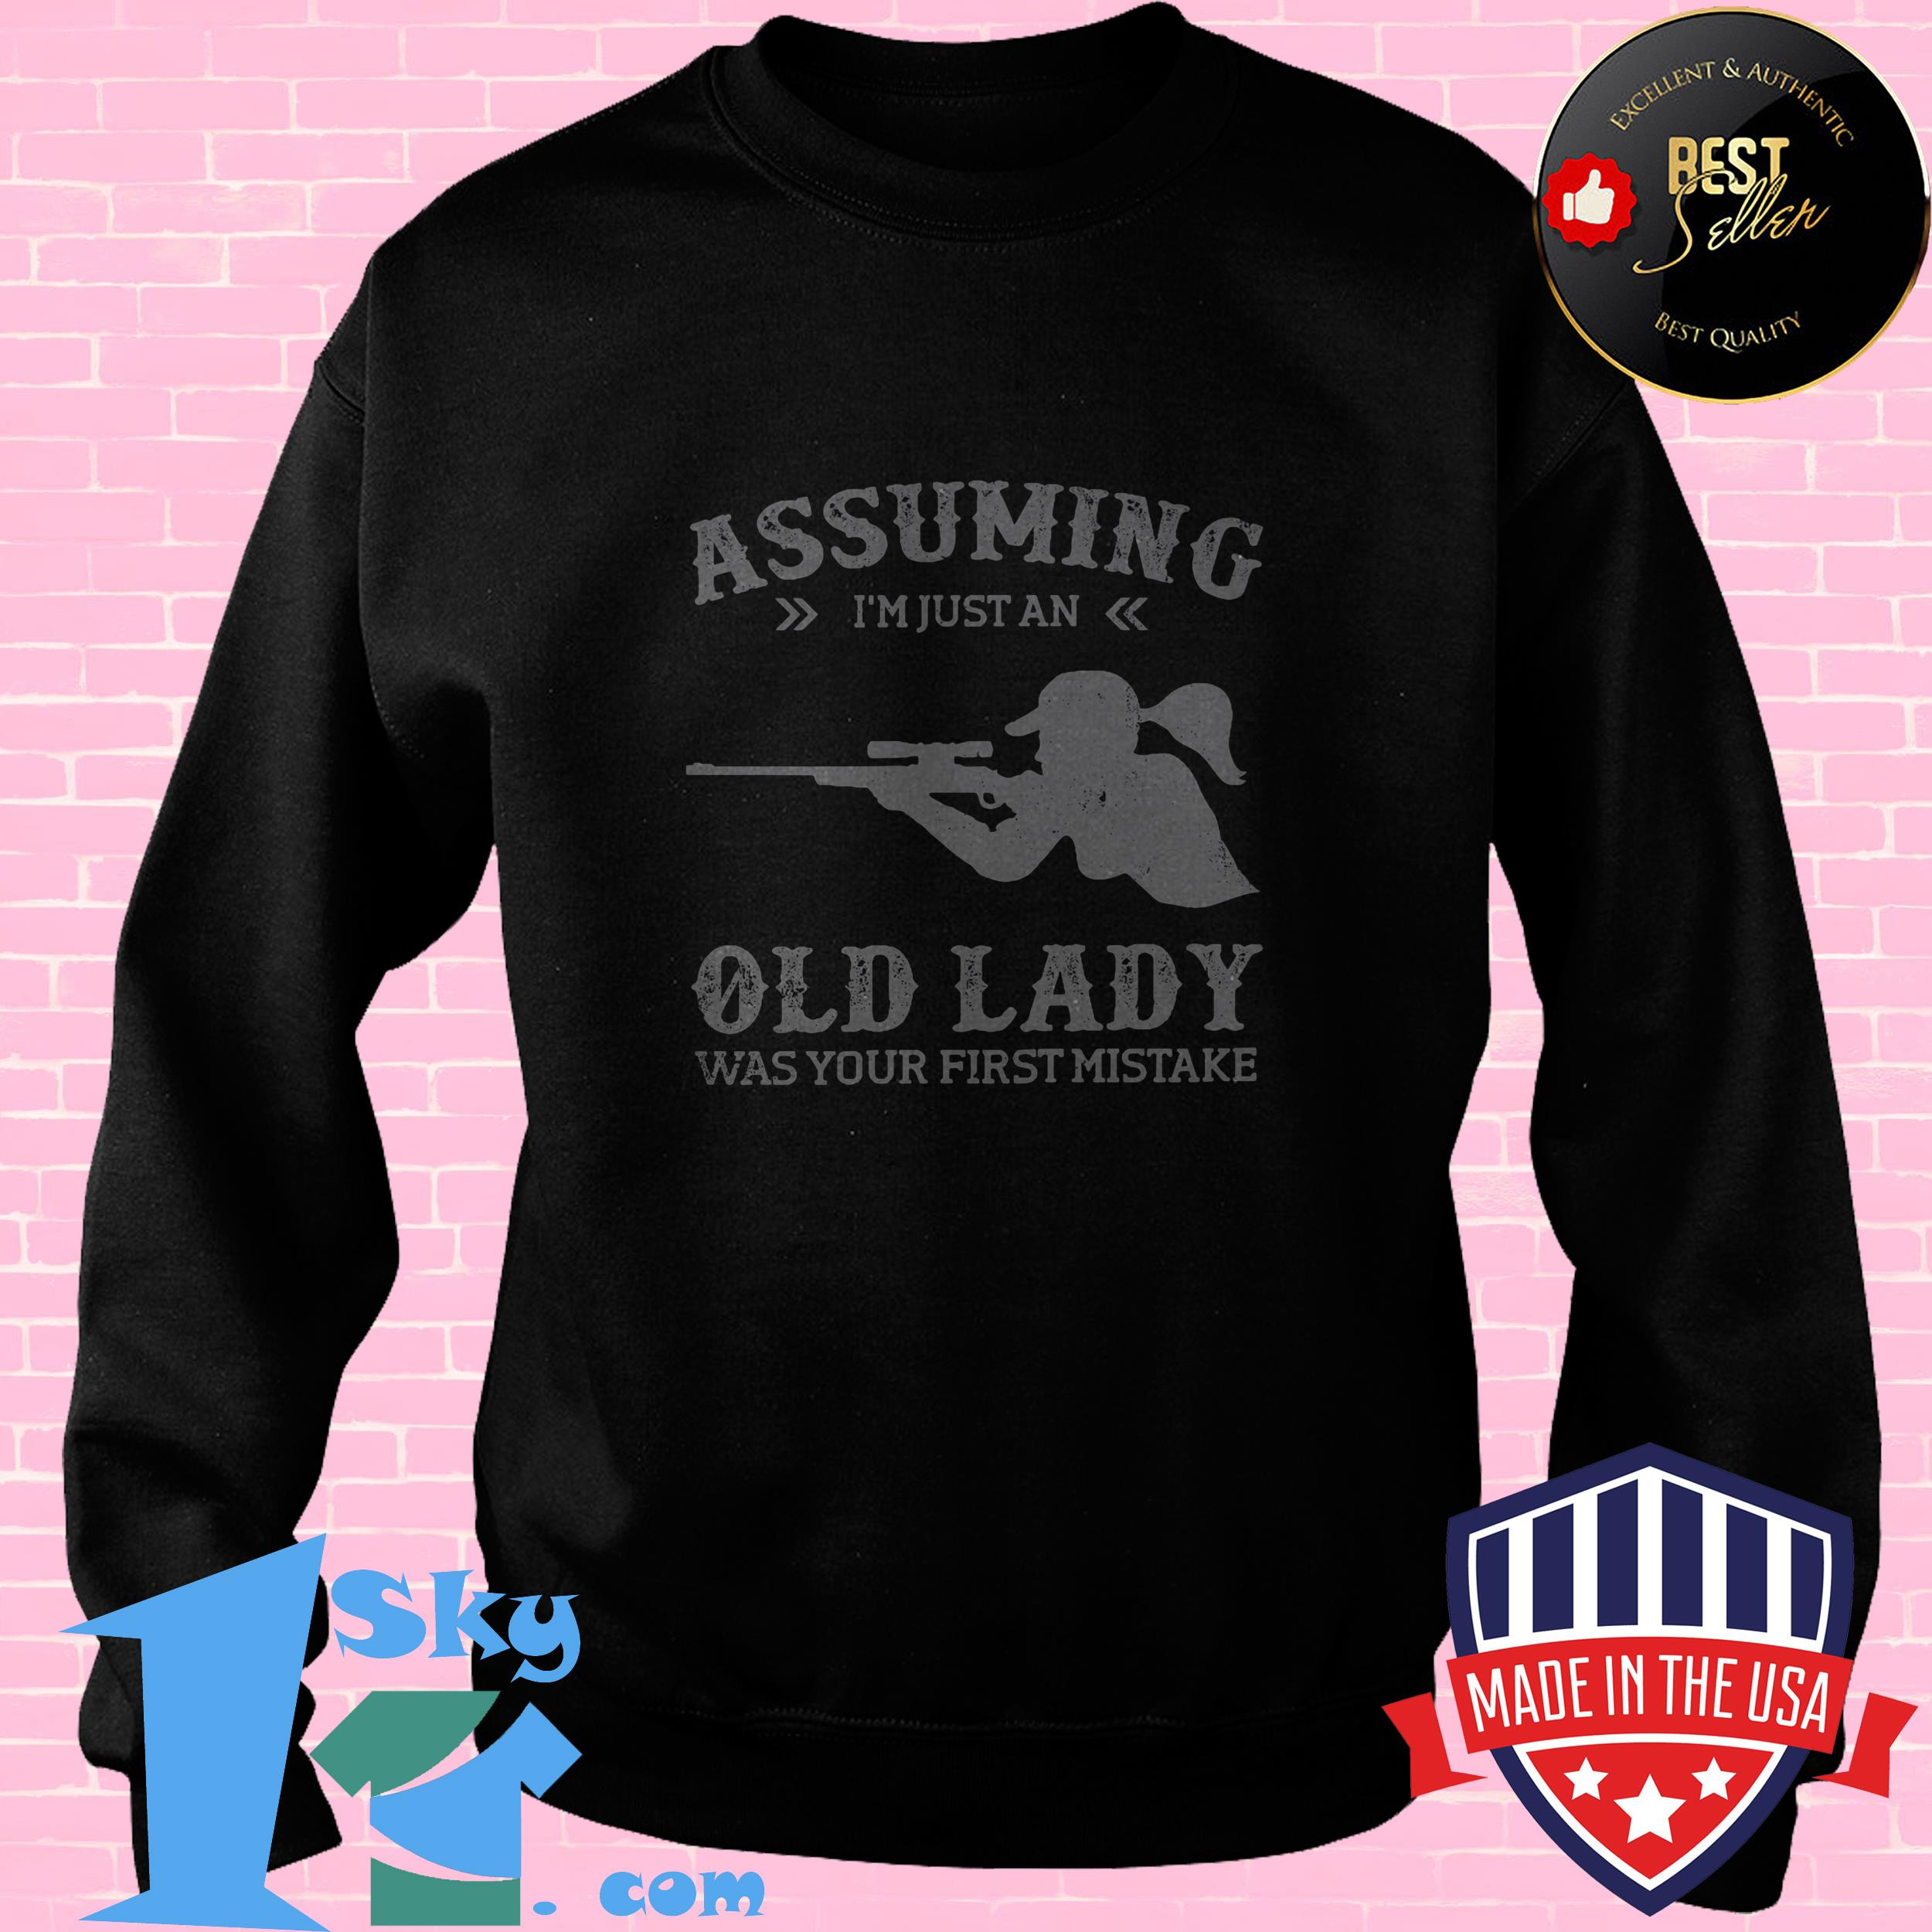 assuming im just an old lady was your first mistake soldier sweashirt - Assuming I'm Just An Old Lady Was Your First Mistake Soldier shirt